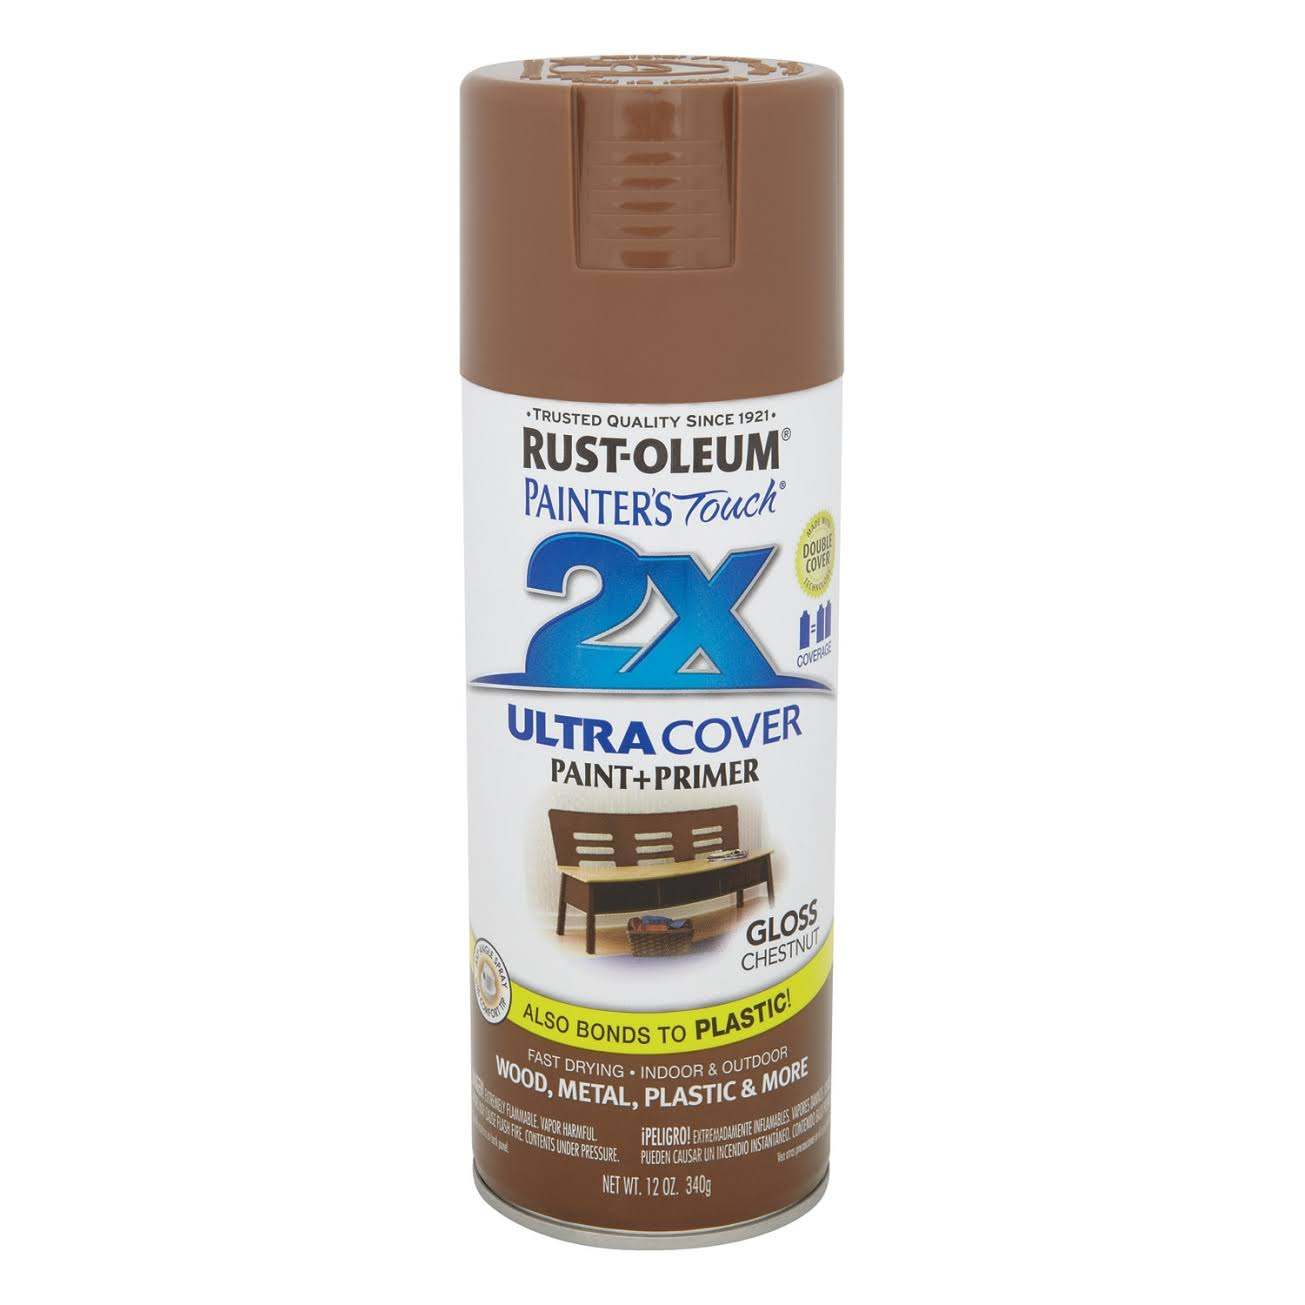 Rust-Oleum Painter's Touch 249847 2x Ultra Cover Spray Paint, 12 oz, Gloss Chestnut